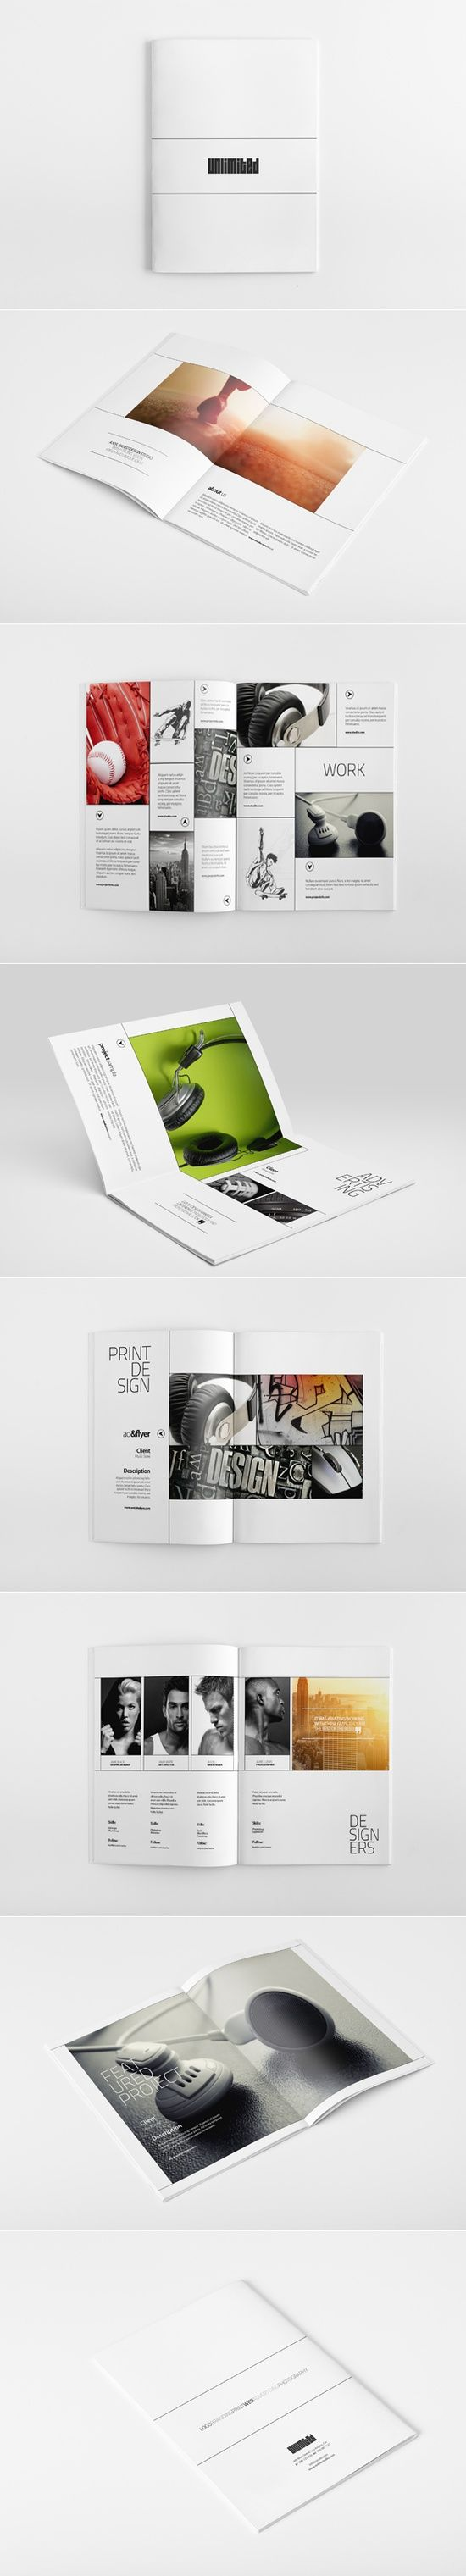 374 best Editorial images on Pinterest | Editorial design, Page ...